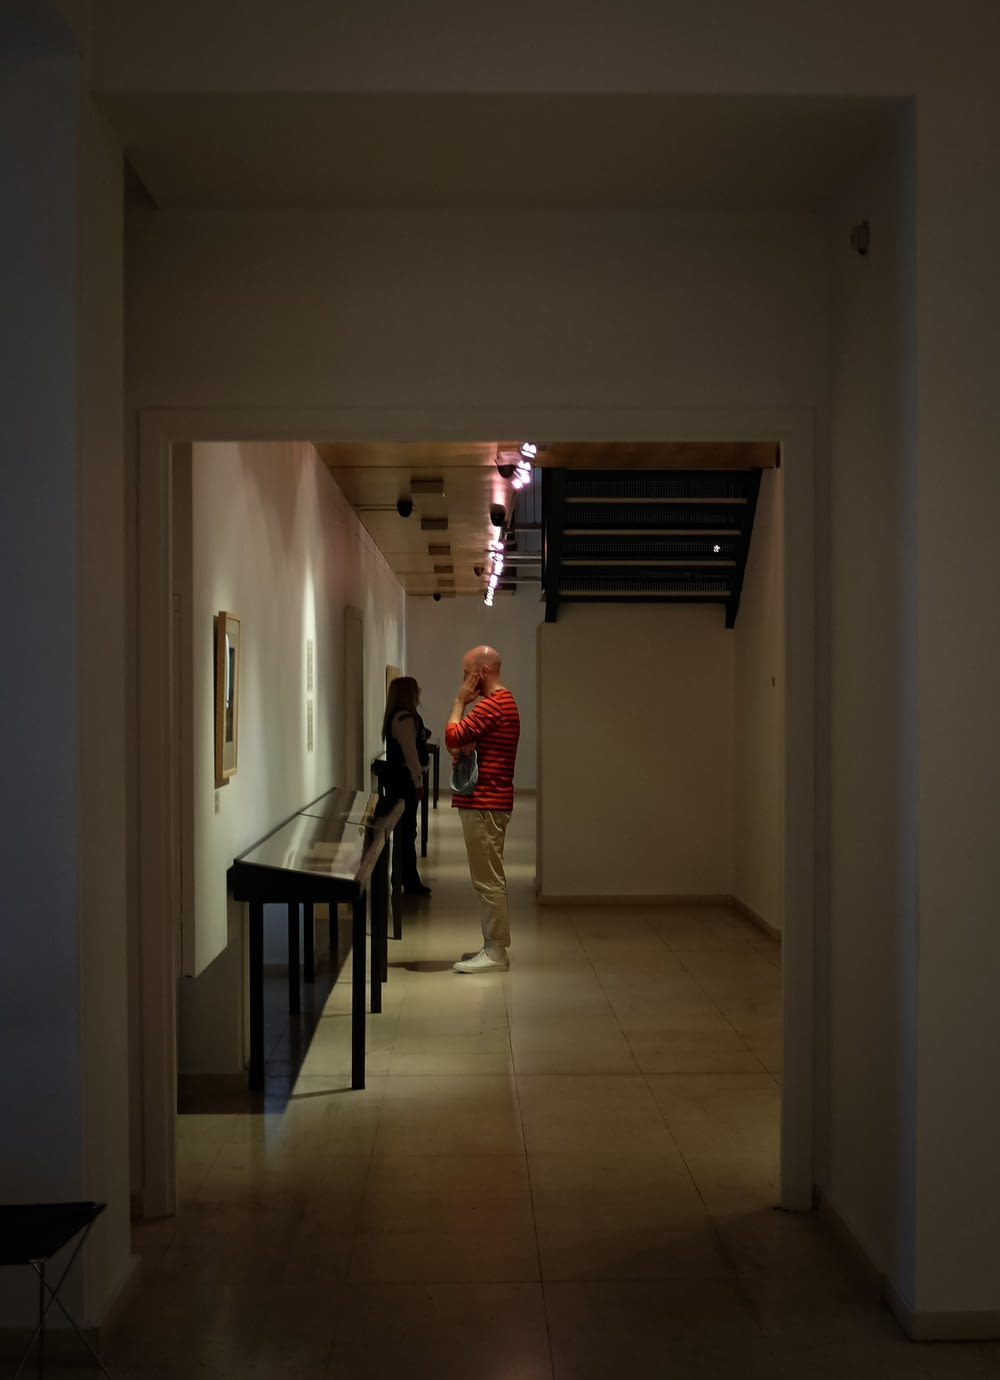 woman in red long sleeve shirt standing on hallway